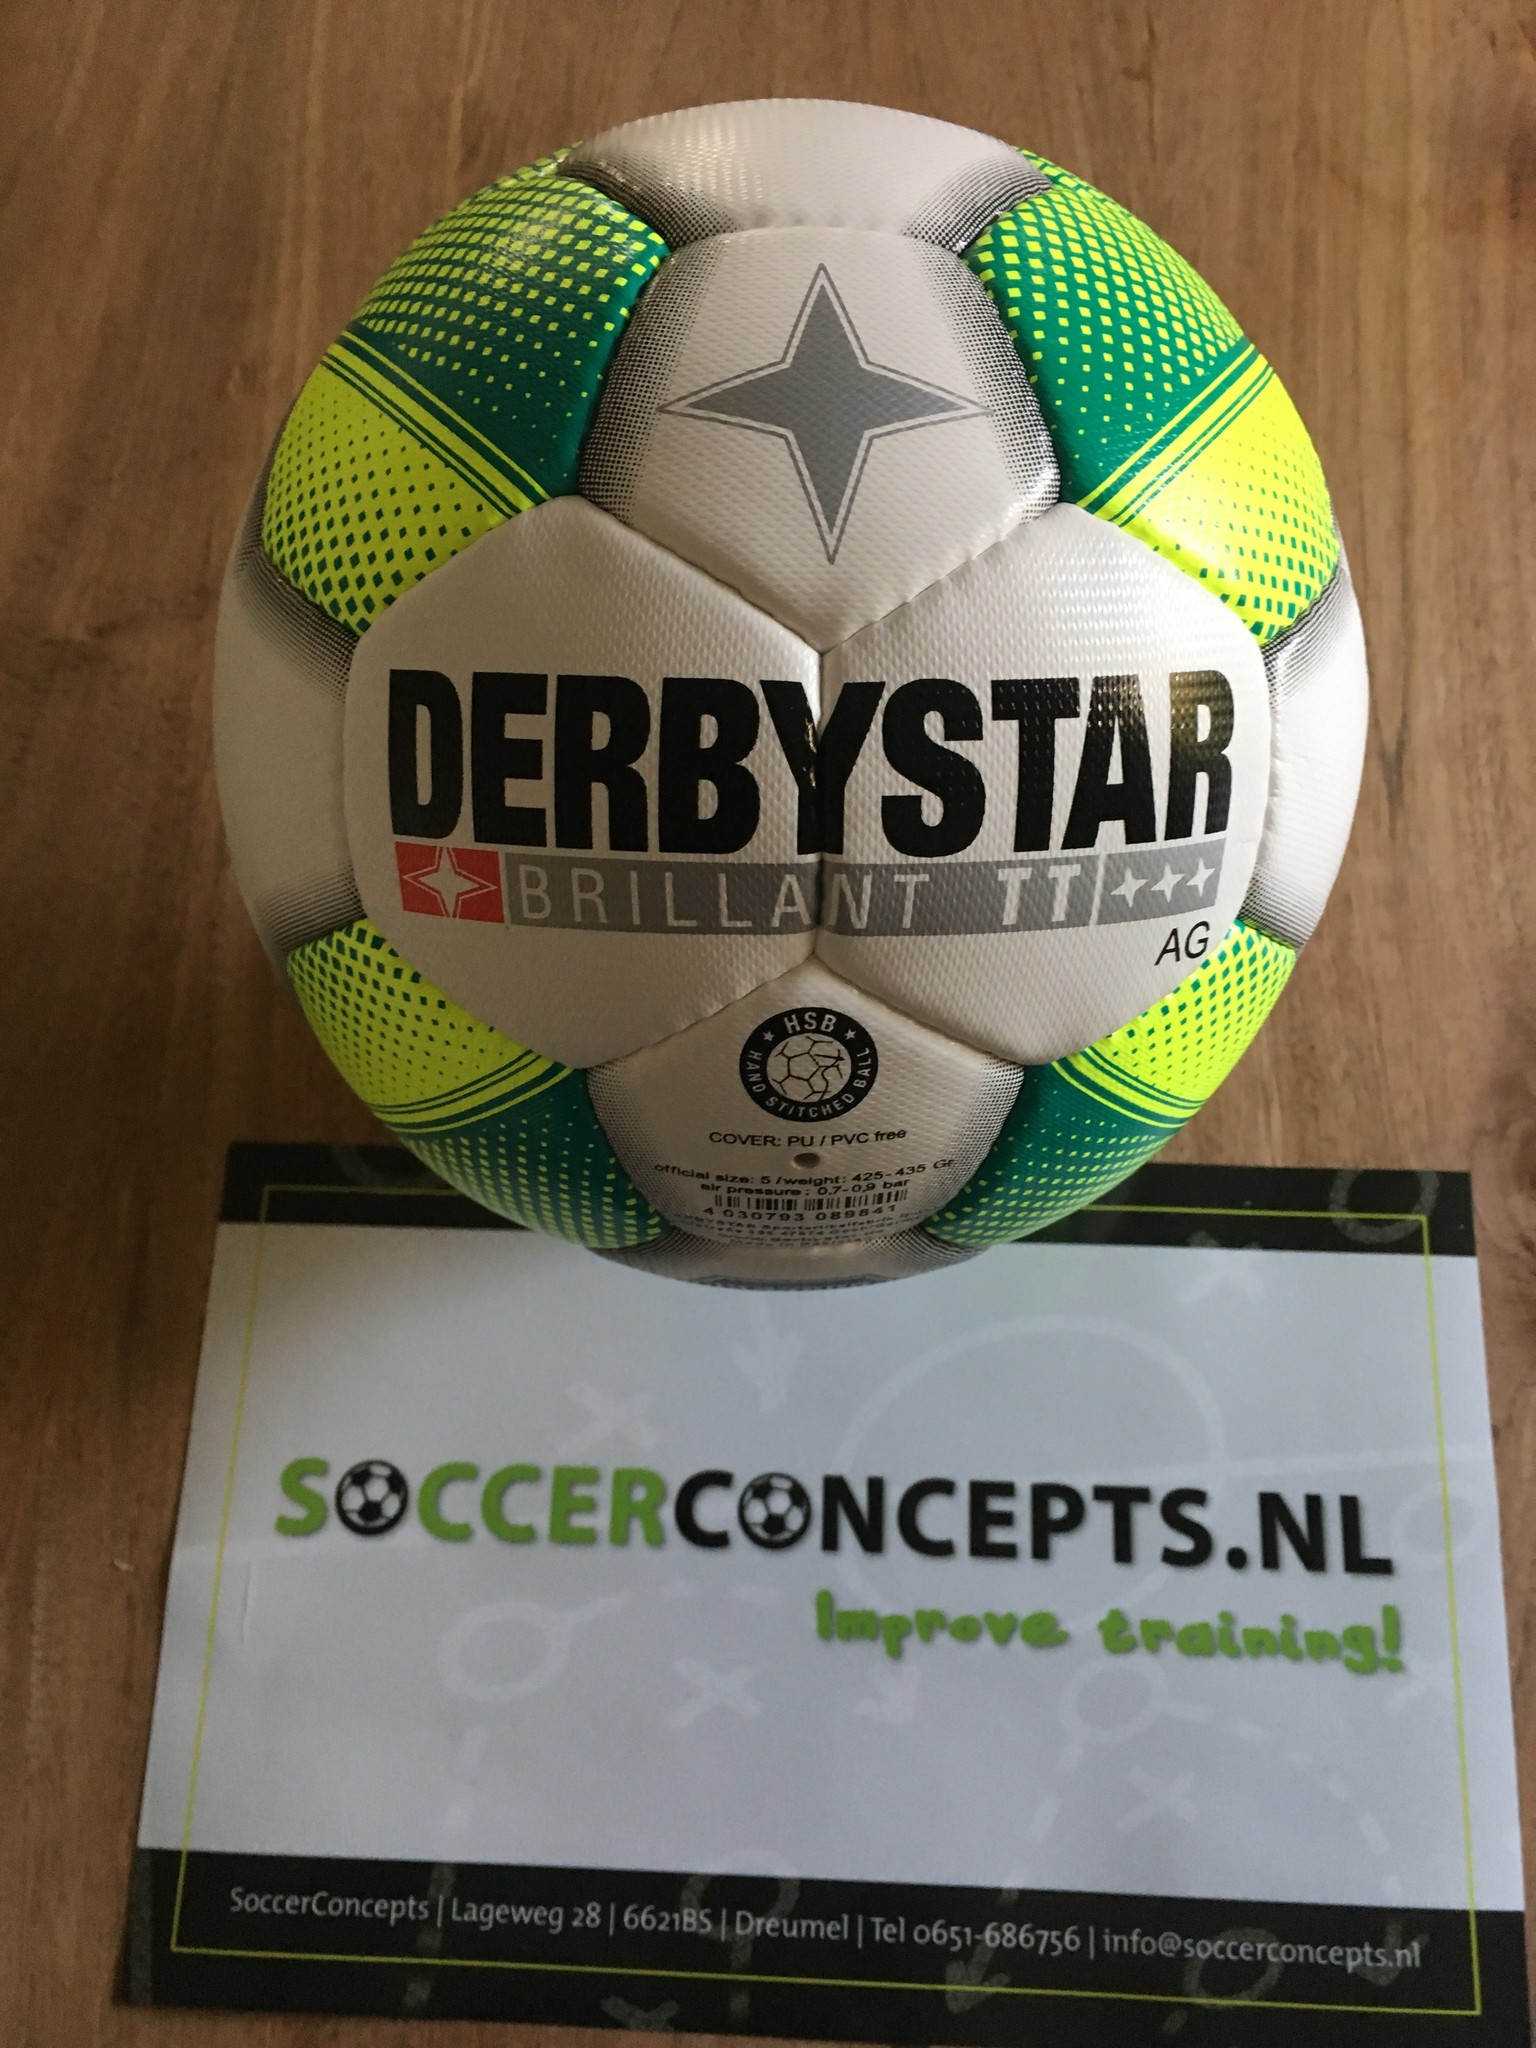 Derby Star Brillant TT AG Trainingsballen voor kunstgras